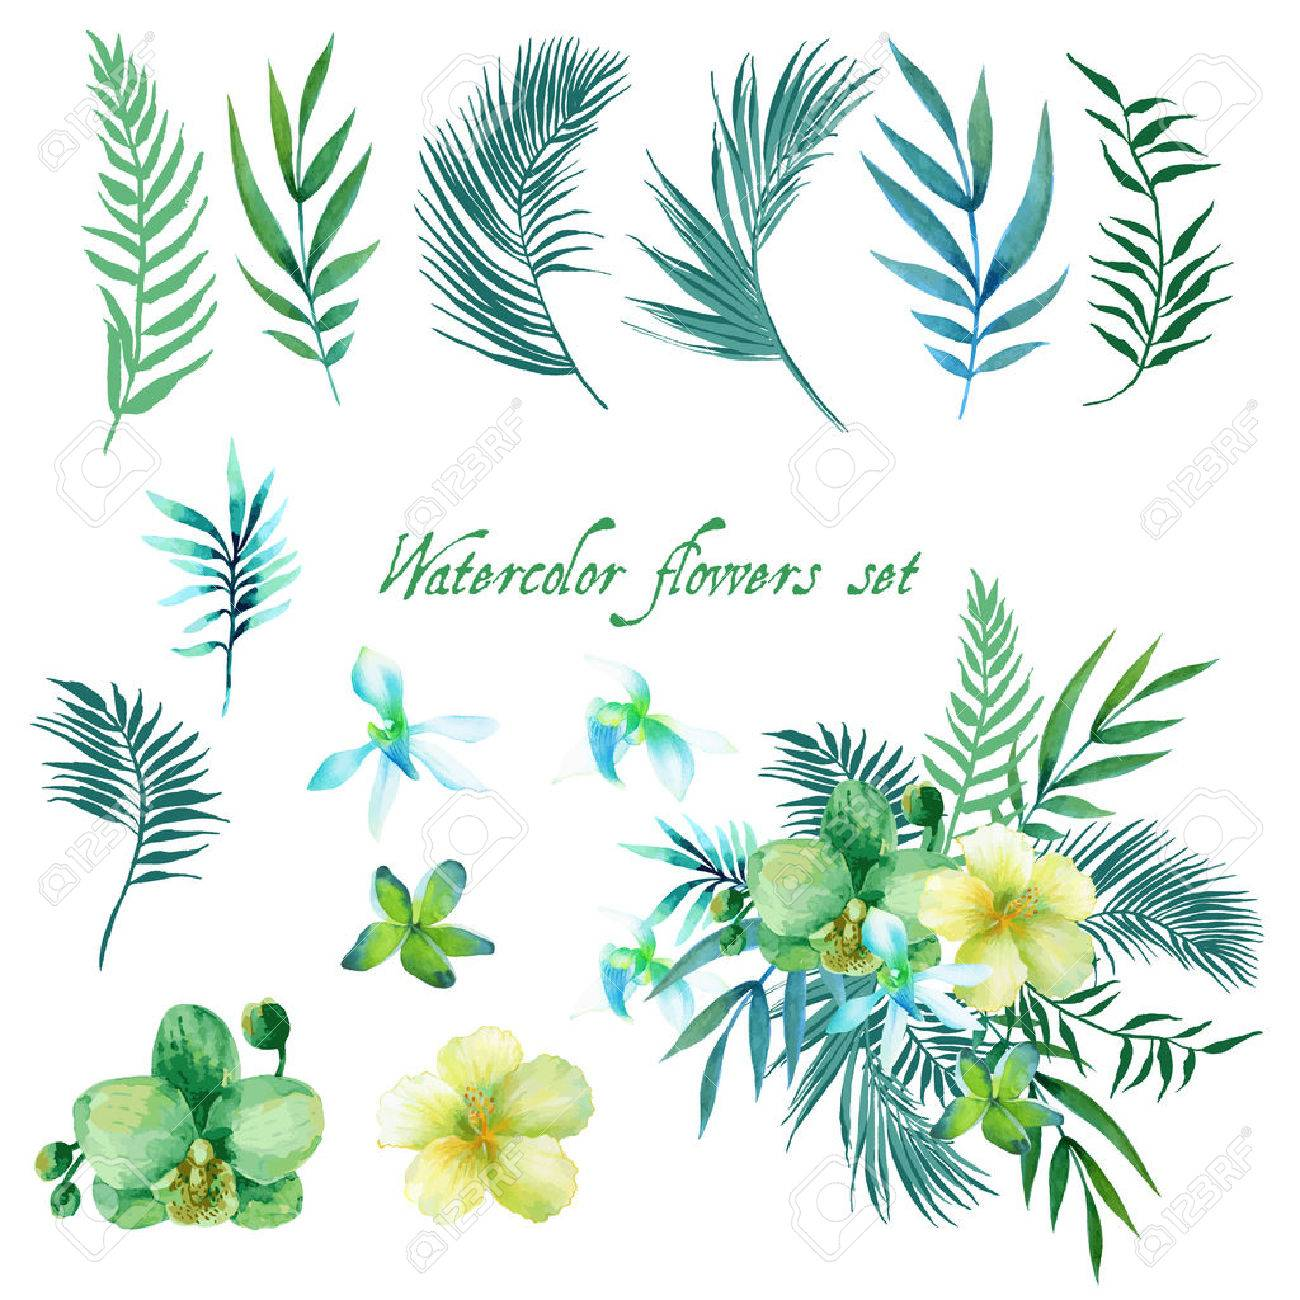 Watercolor floral set for your design. - 42650986